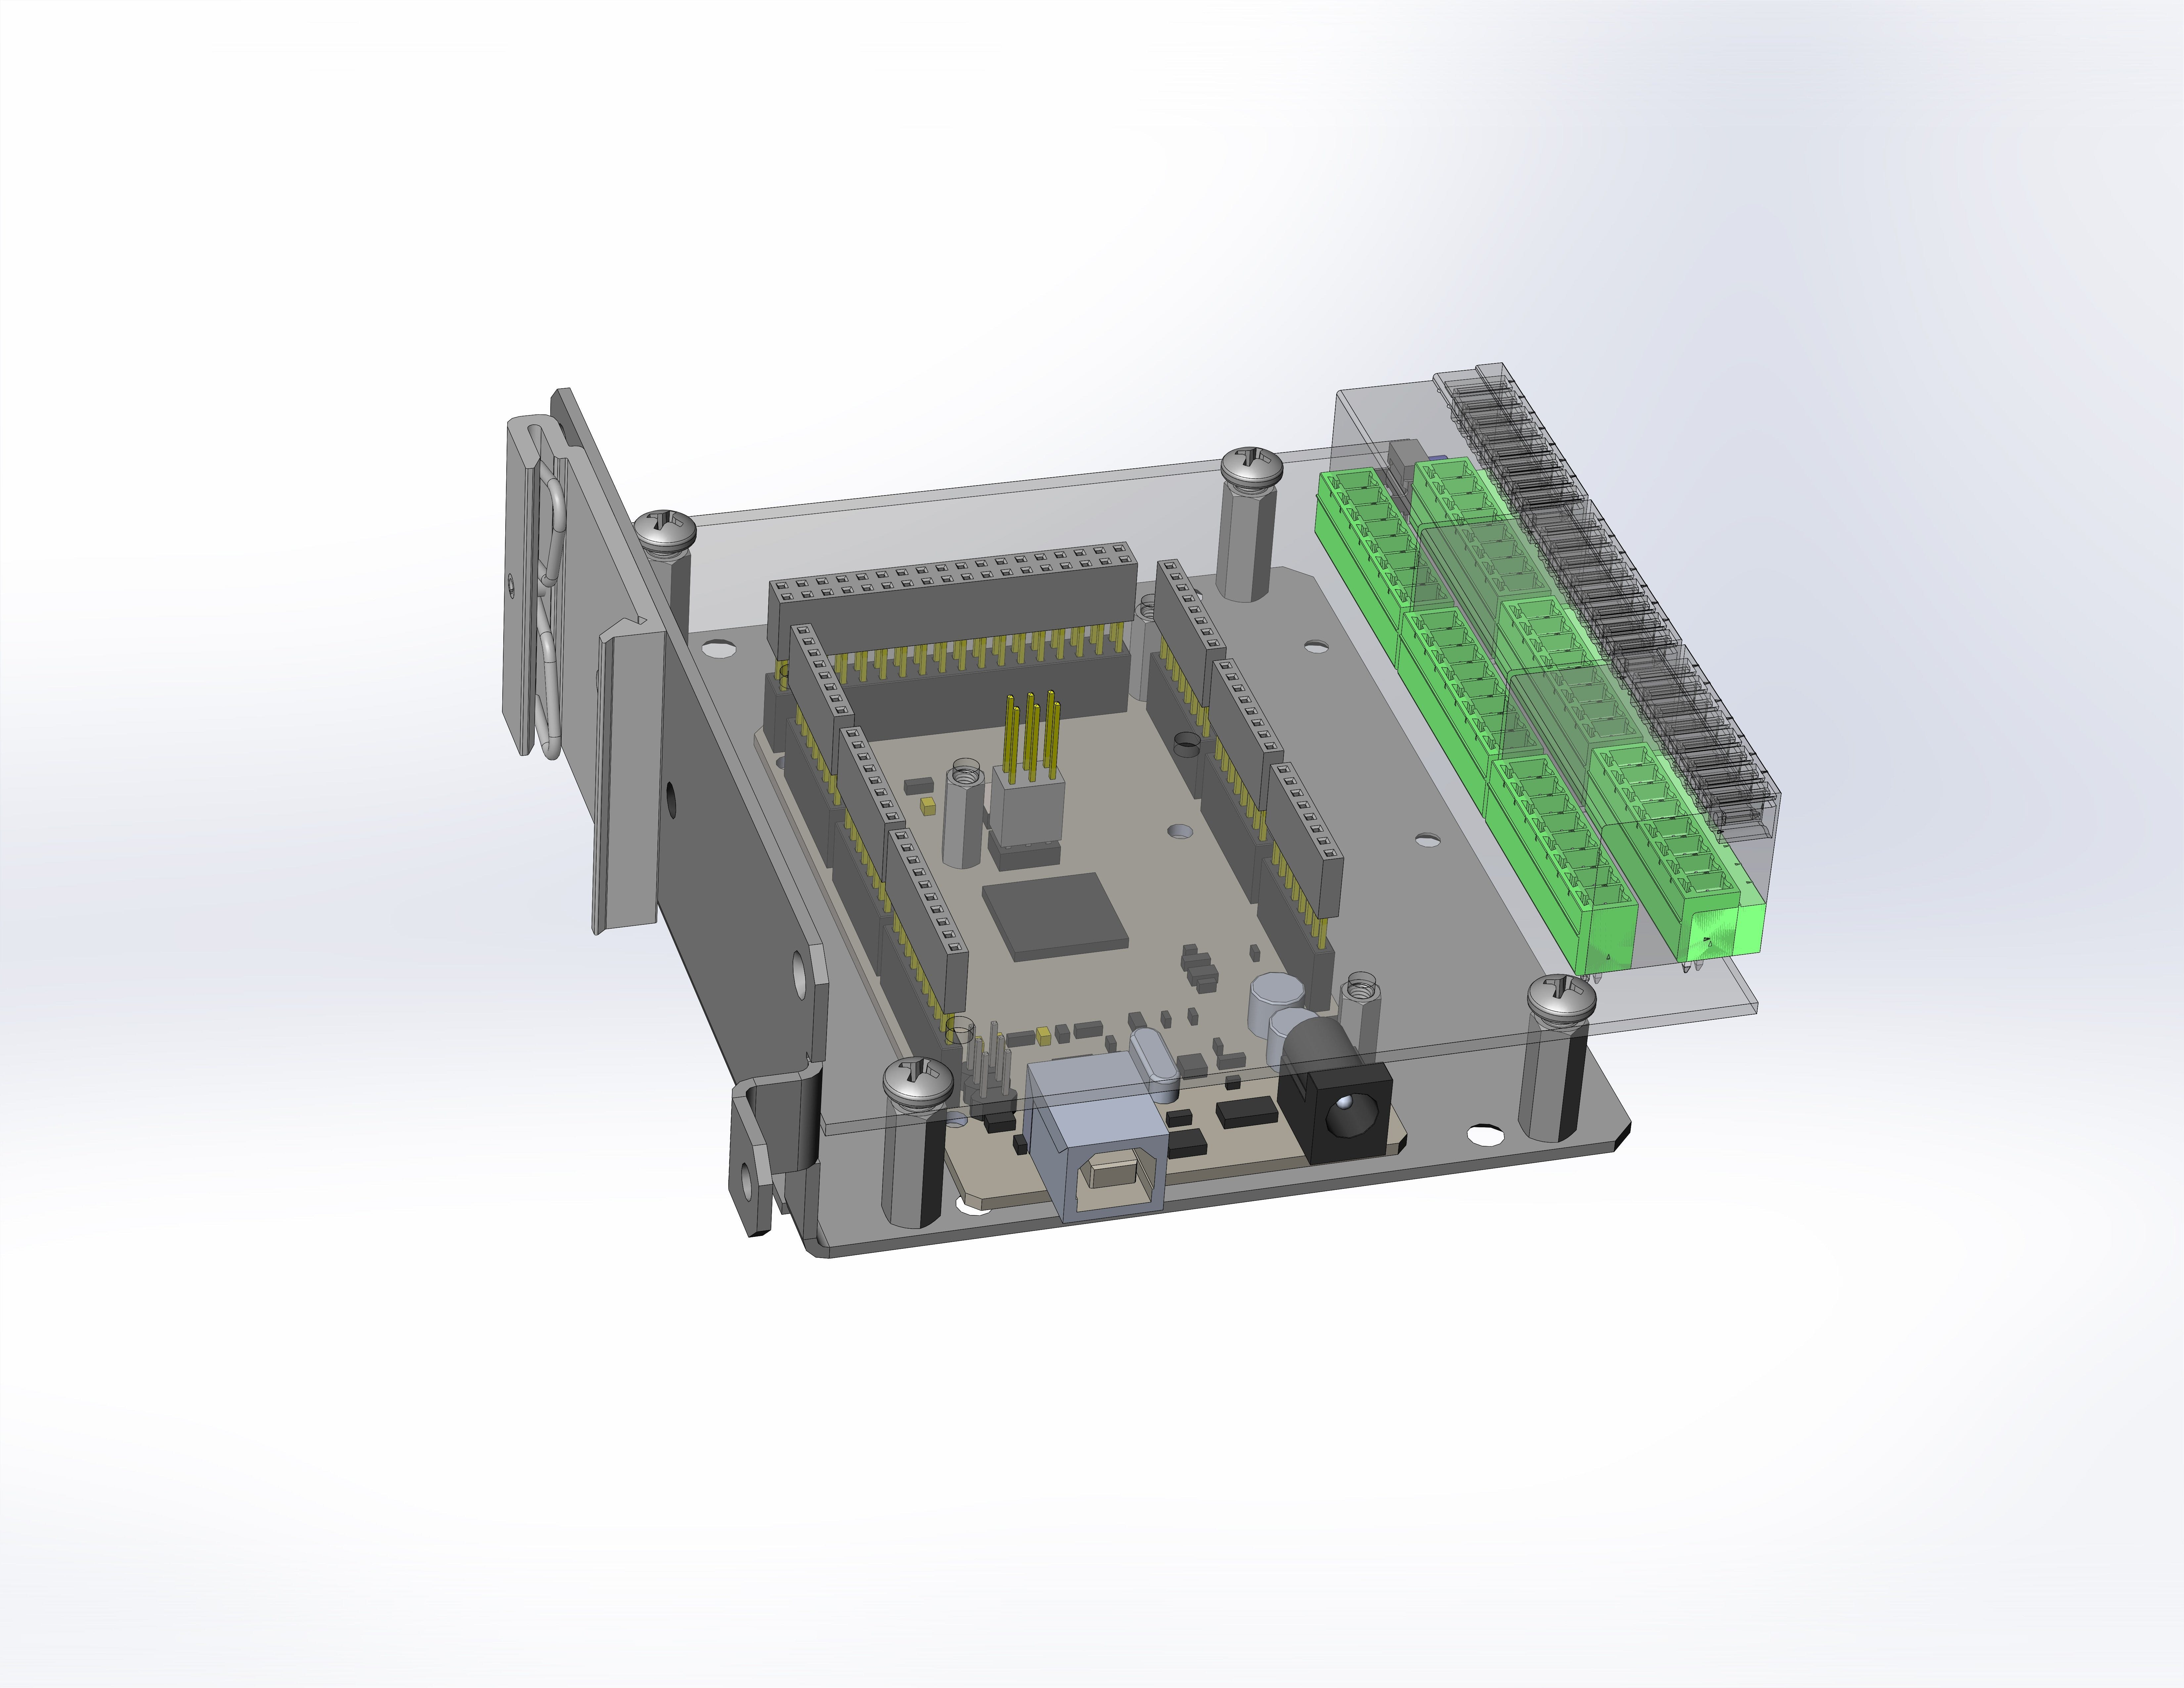 DIN-Uino packaging: Baseplate + DIN-Uino-Proto1 board (transparent) + MEGA2560